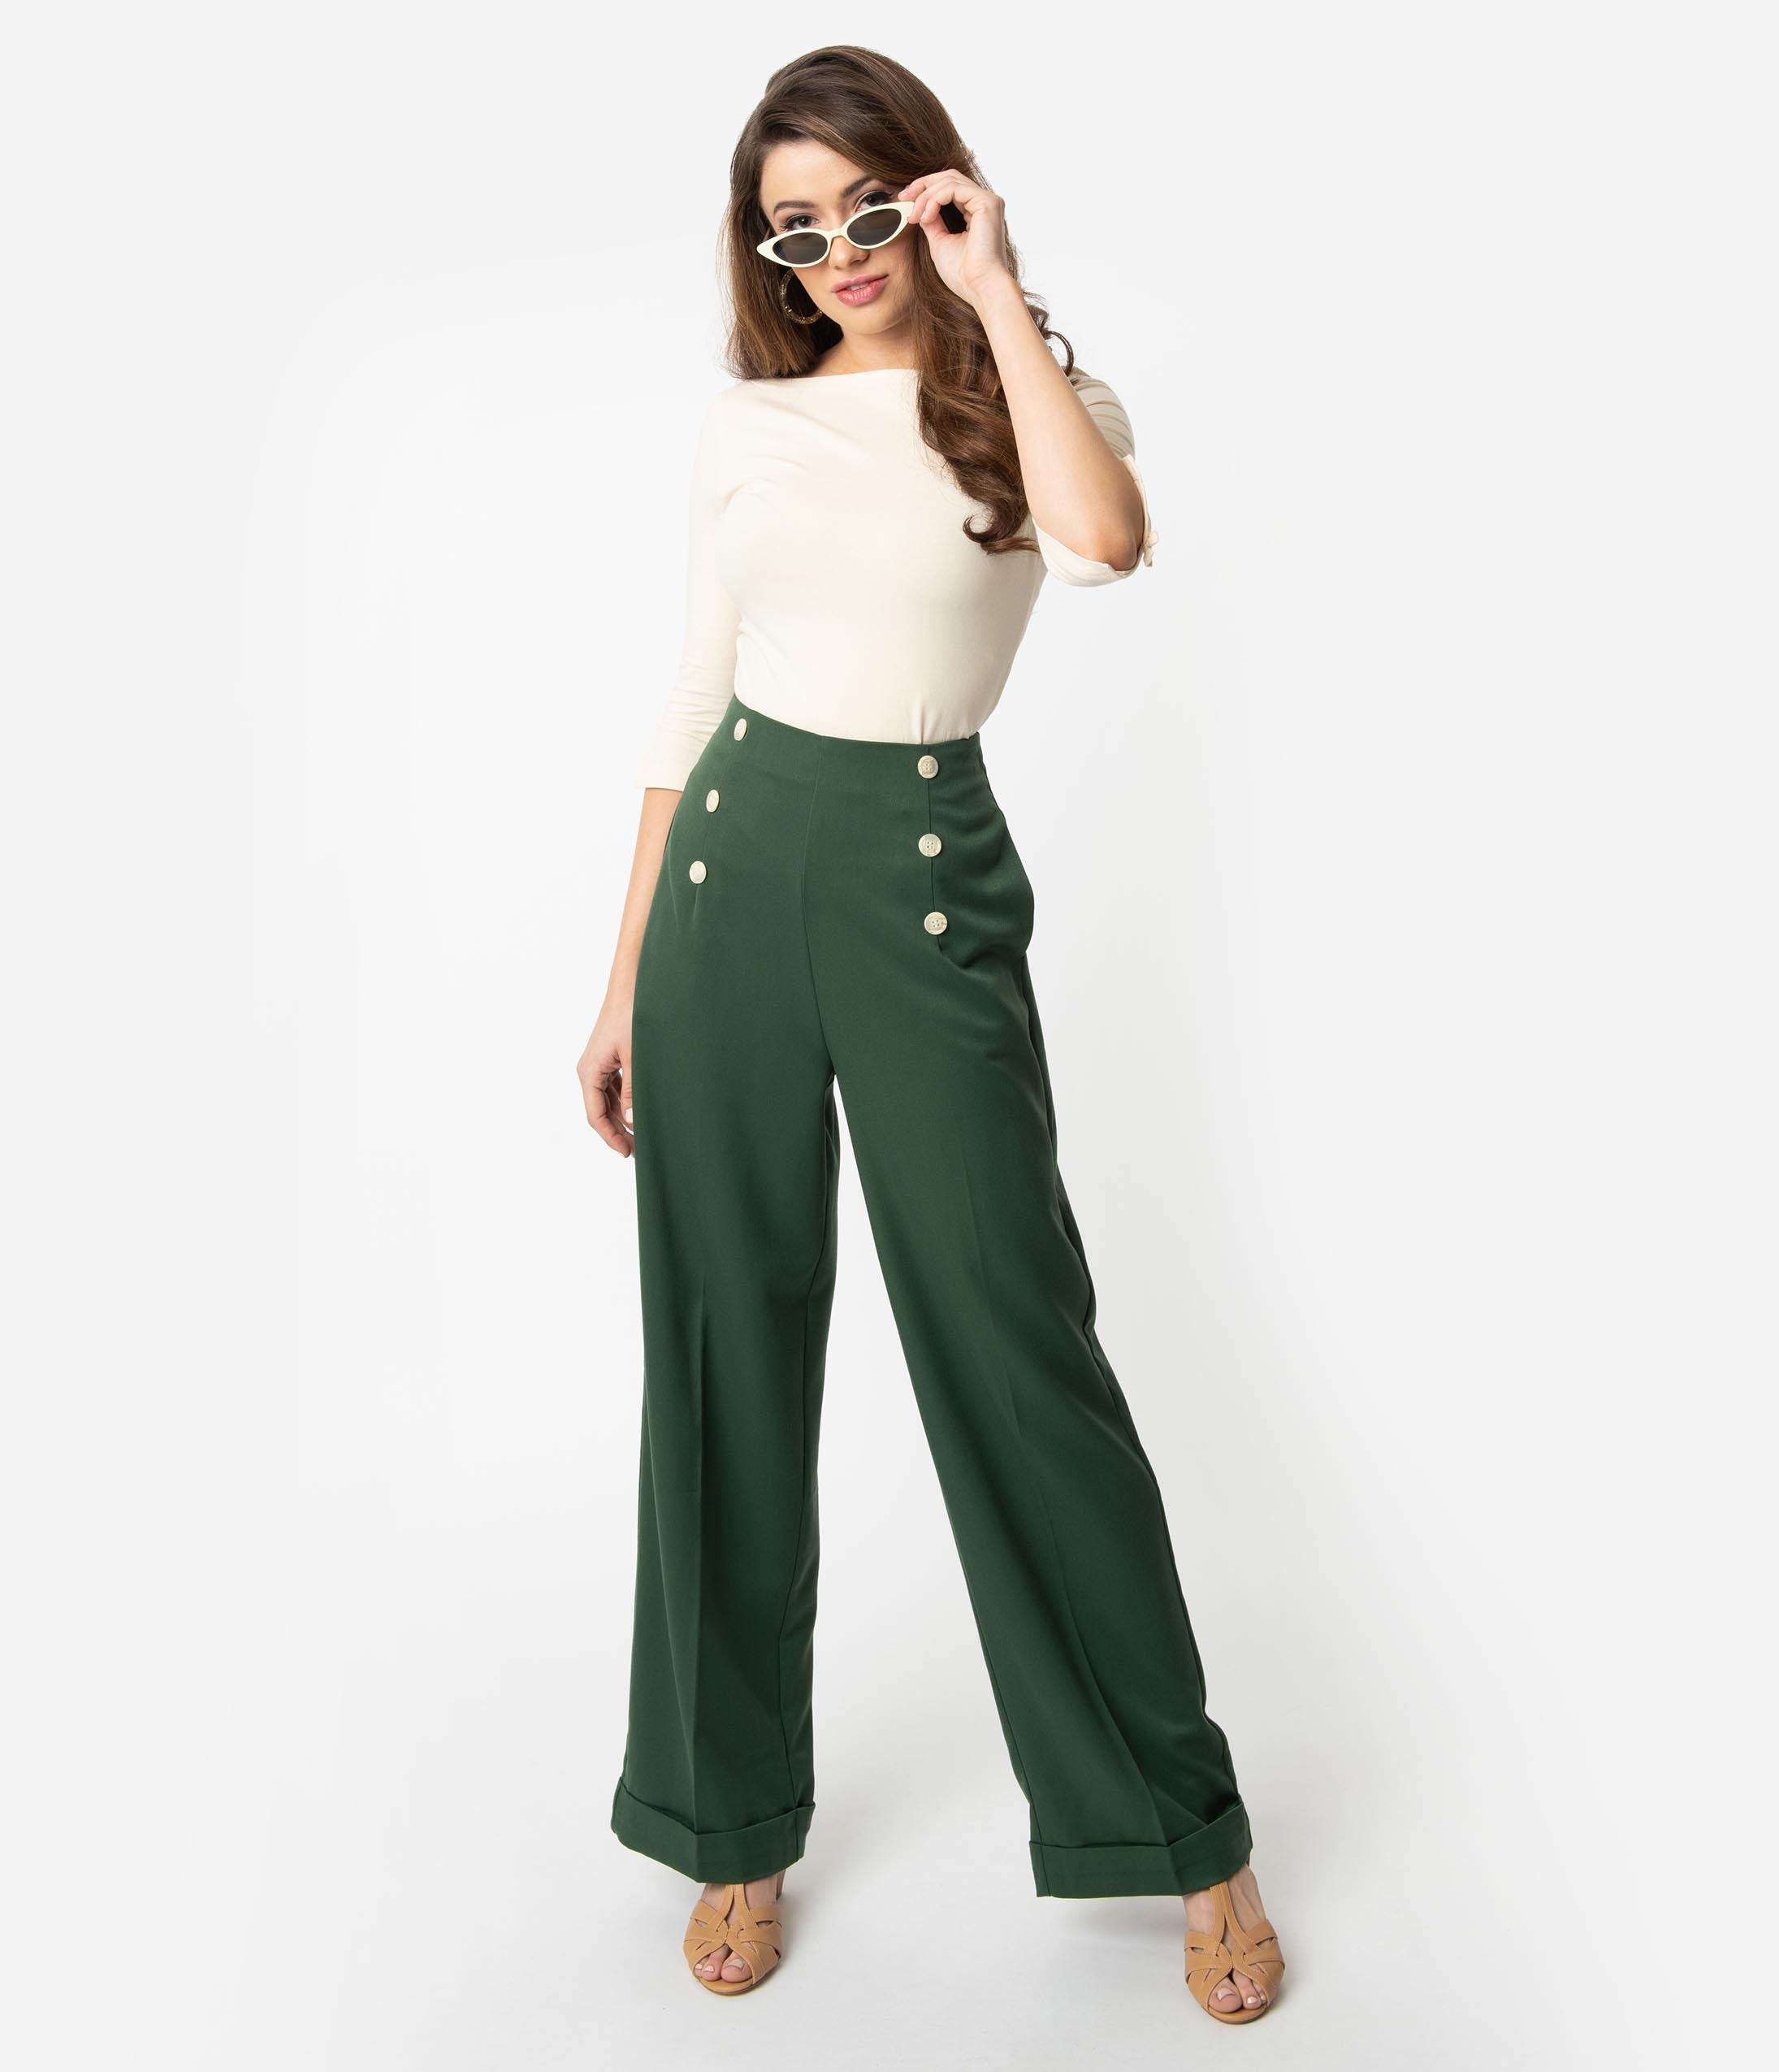 Agent Peggy Carter Costume, Dress, Hats 1940S Style Forest Green Woven Adventures Ahead High Waist Pants $52.00 AT vintagedancer.com